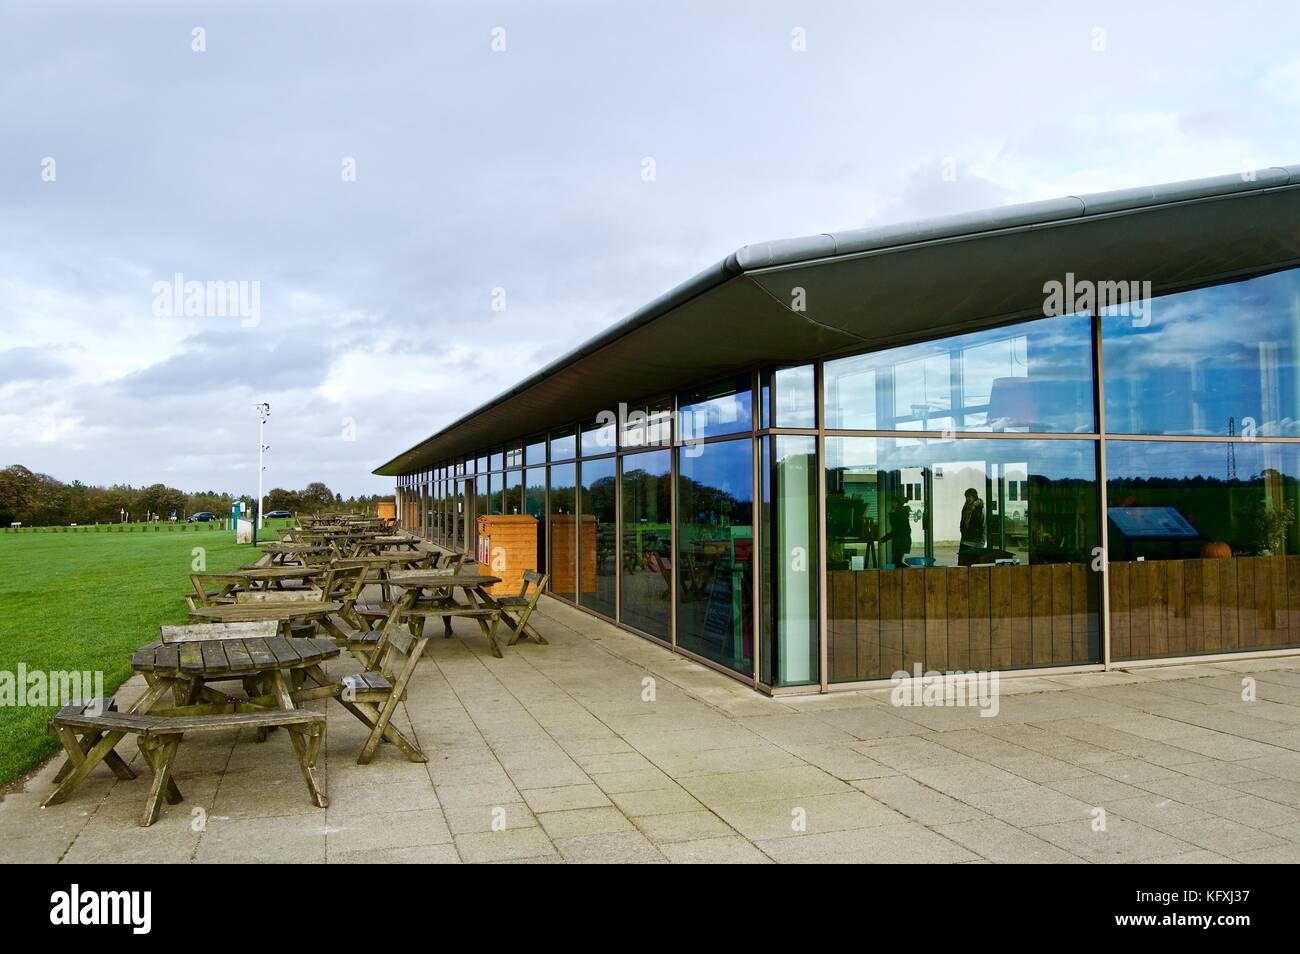 Outdoor tables and chairs at Chiltern Hills Gateway Centre, Dunstable Downs, Bedfordshire, UK - Stock Image